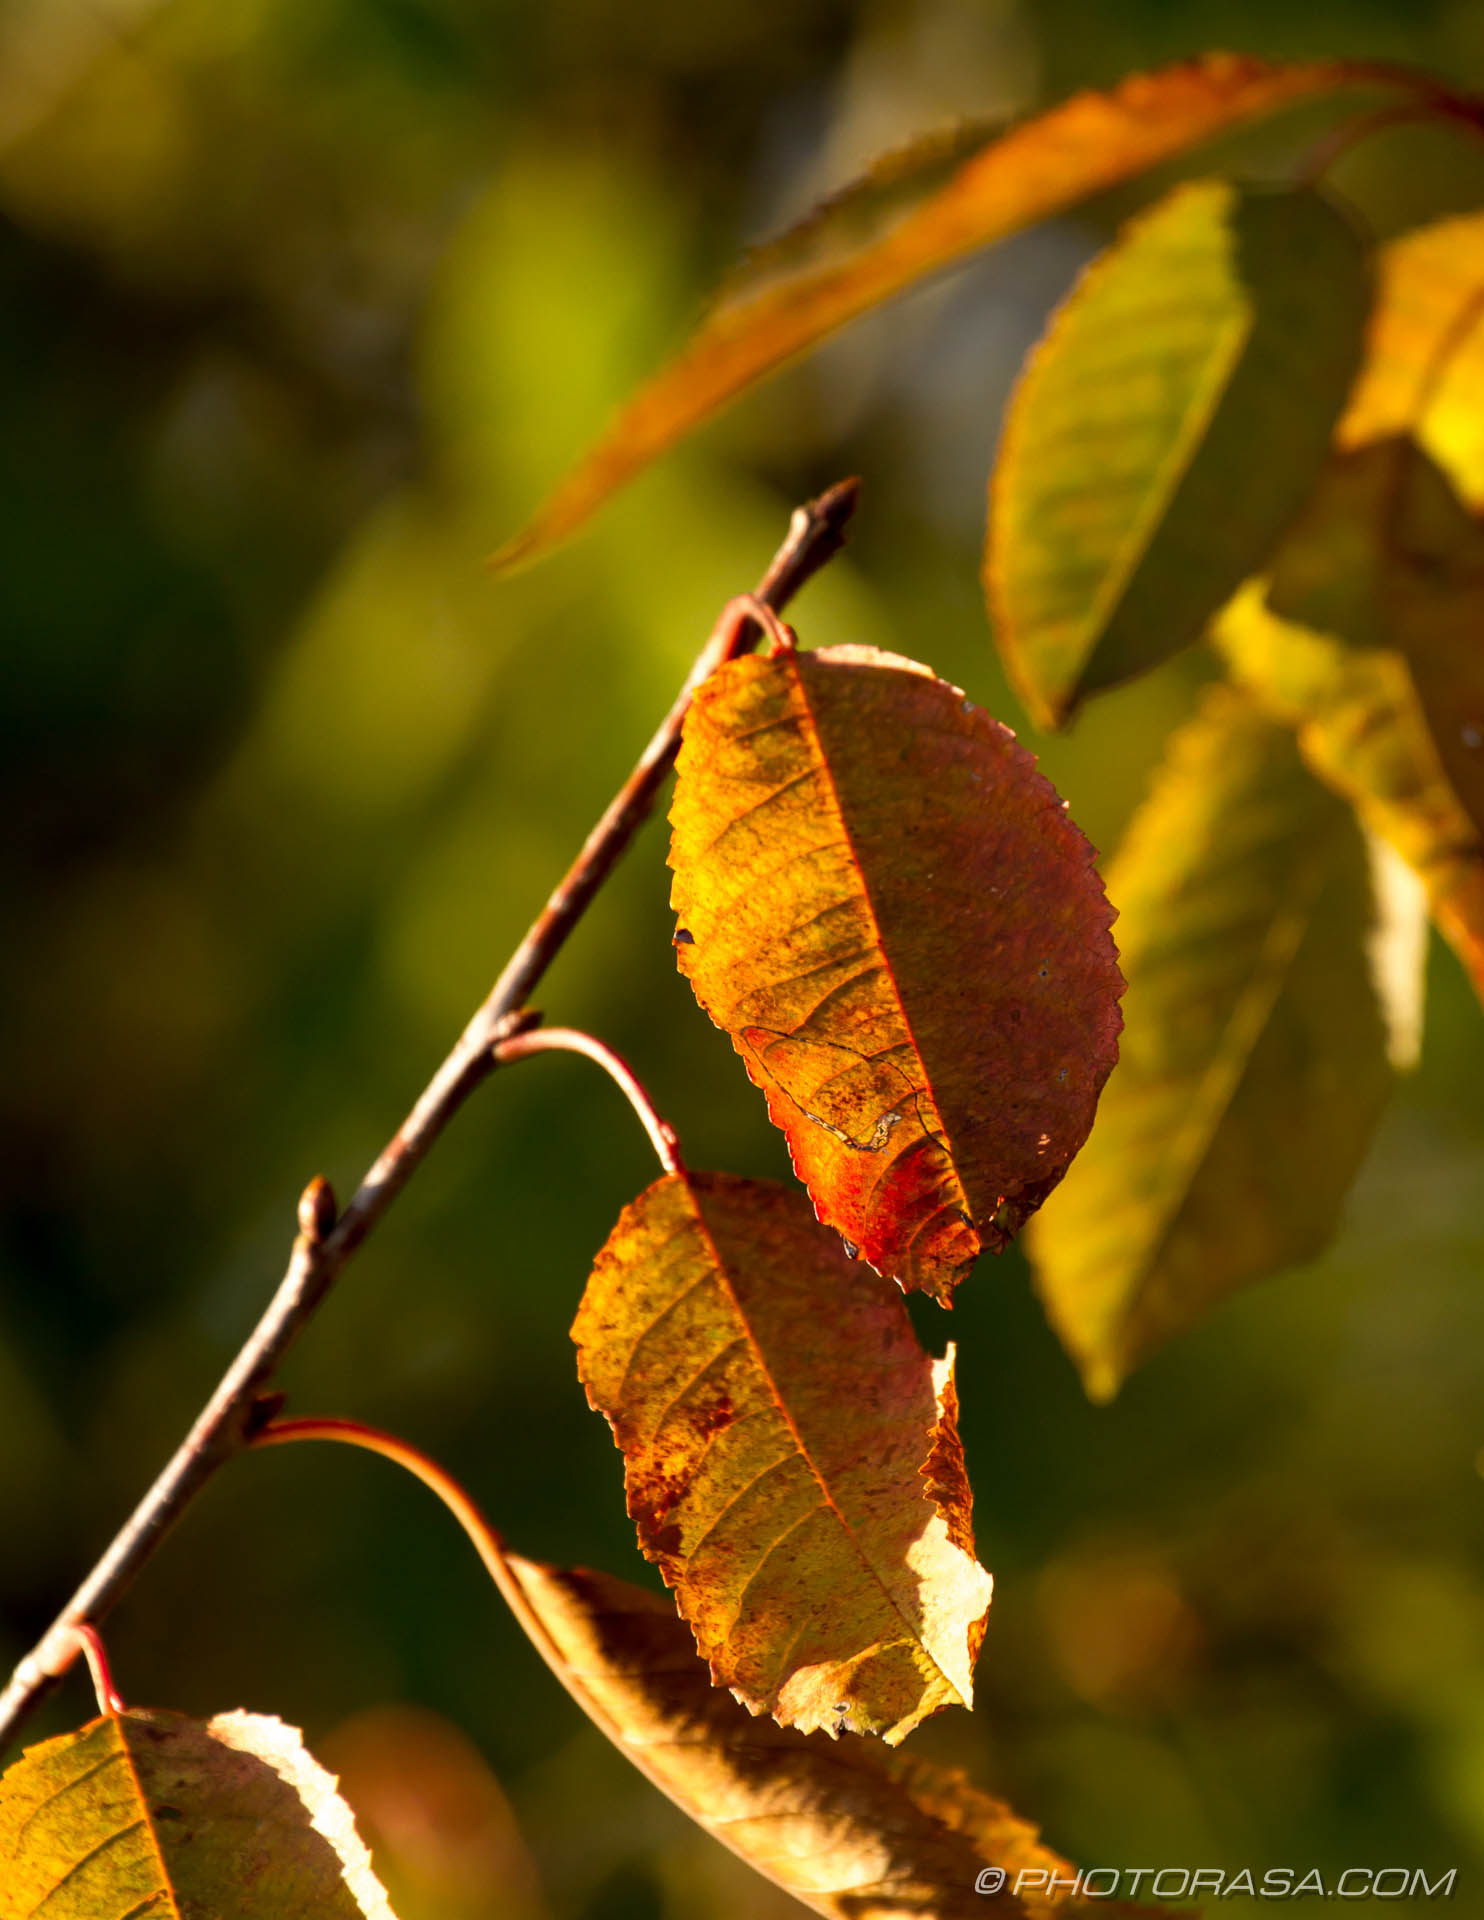 http://photorasa.com/autumn-leaves-sunlight/leaves-angled-on-a-branch/